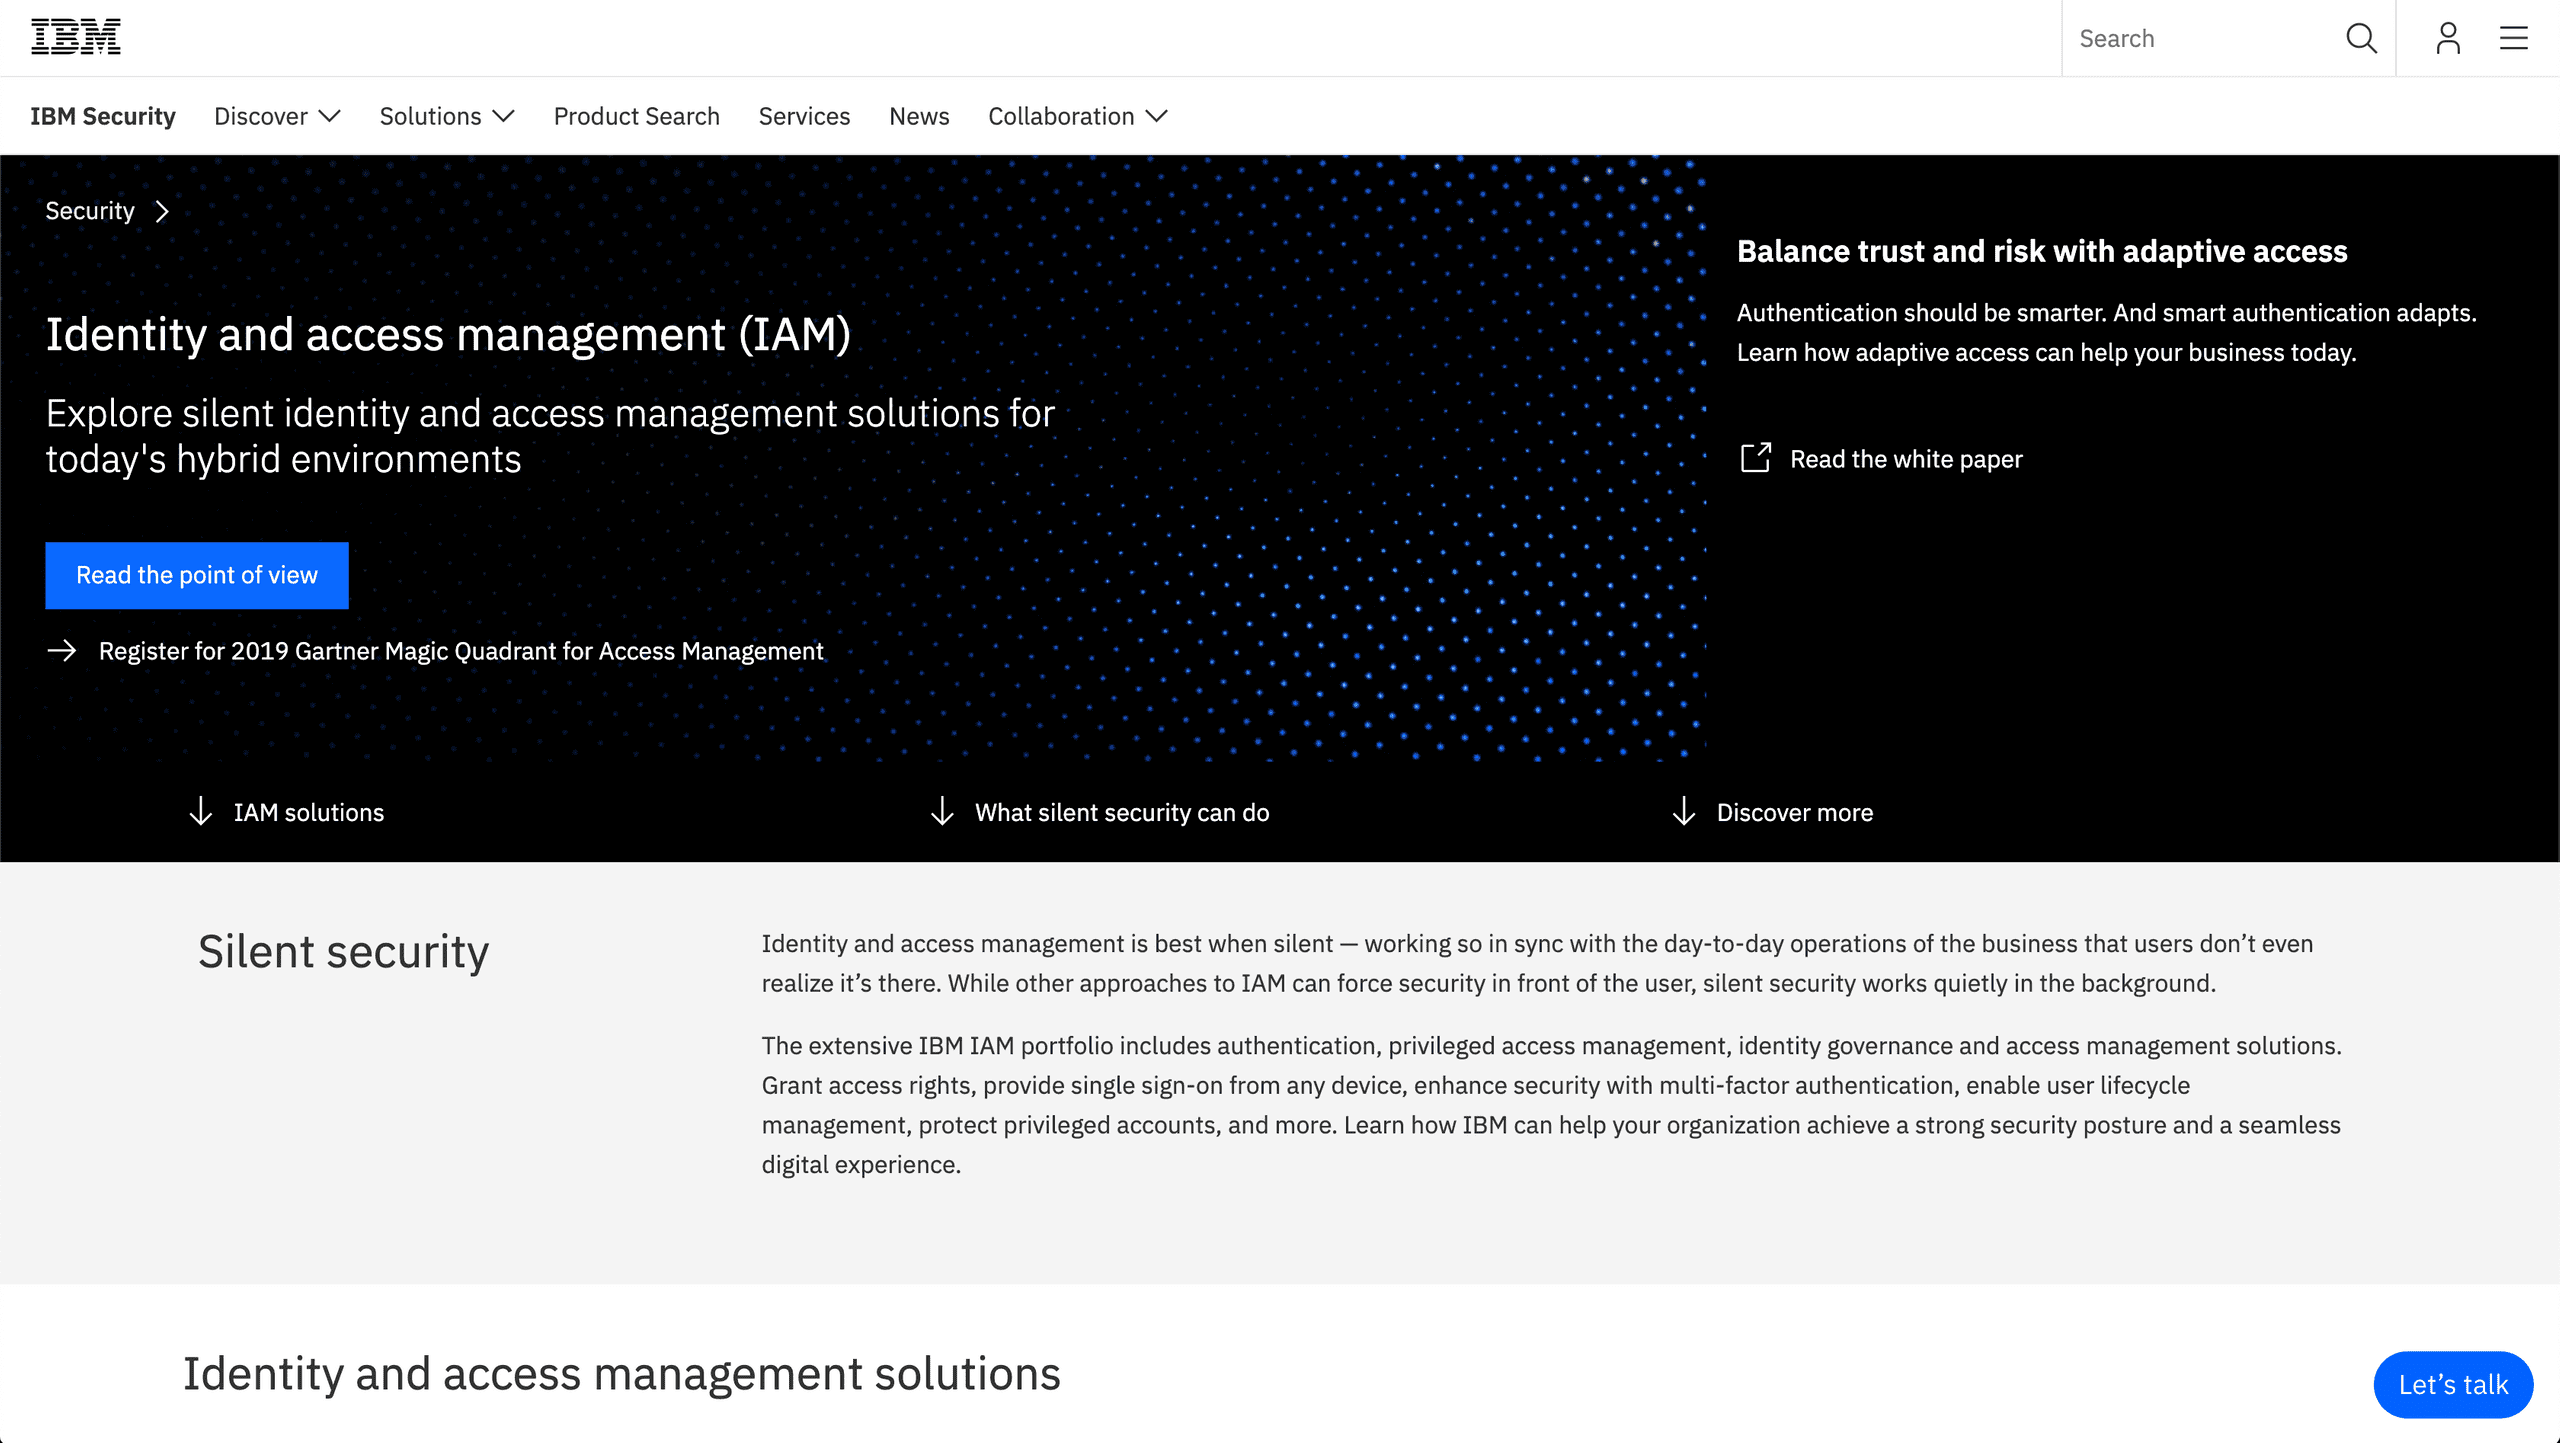 A picture that shows the top part of IBM's website.